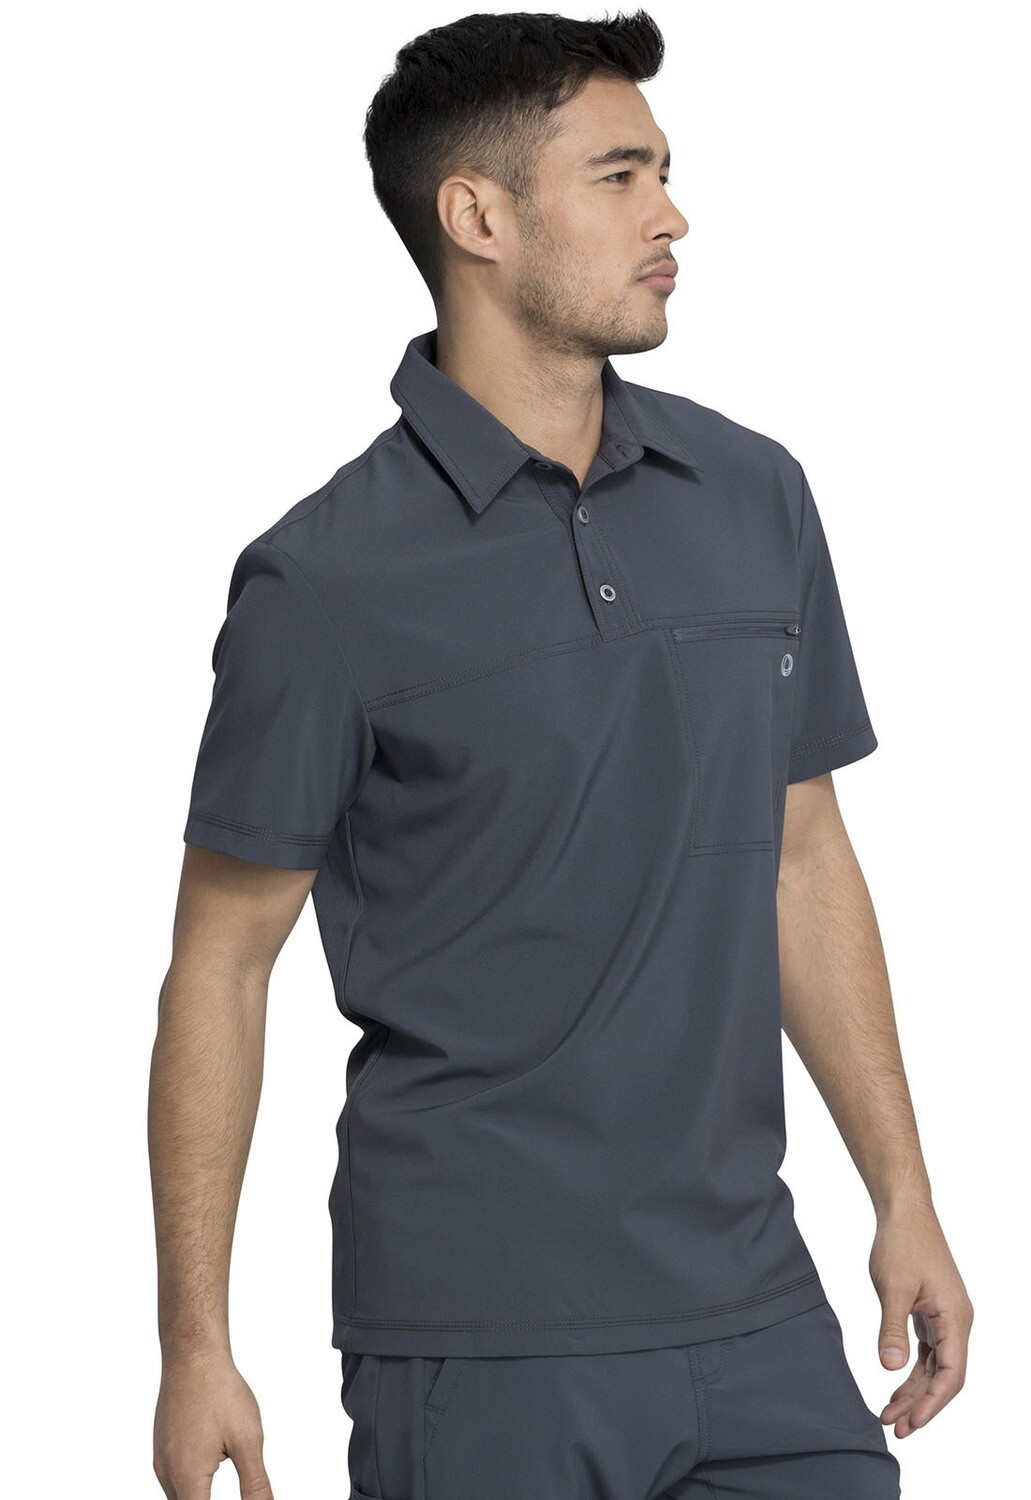 Polo CHEROKEE INFINITY CK825A Colore Pewter